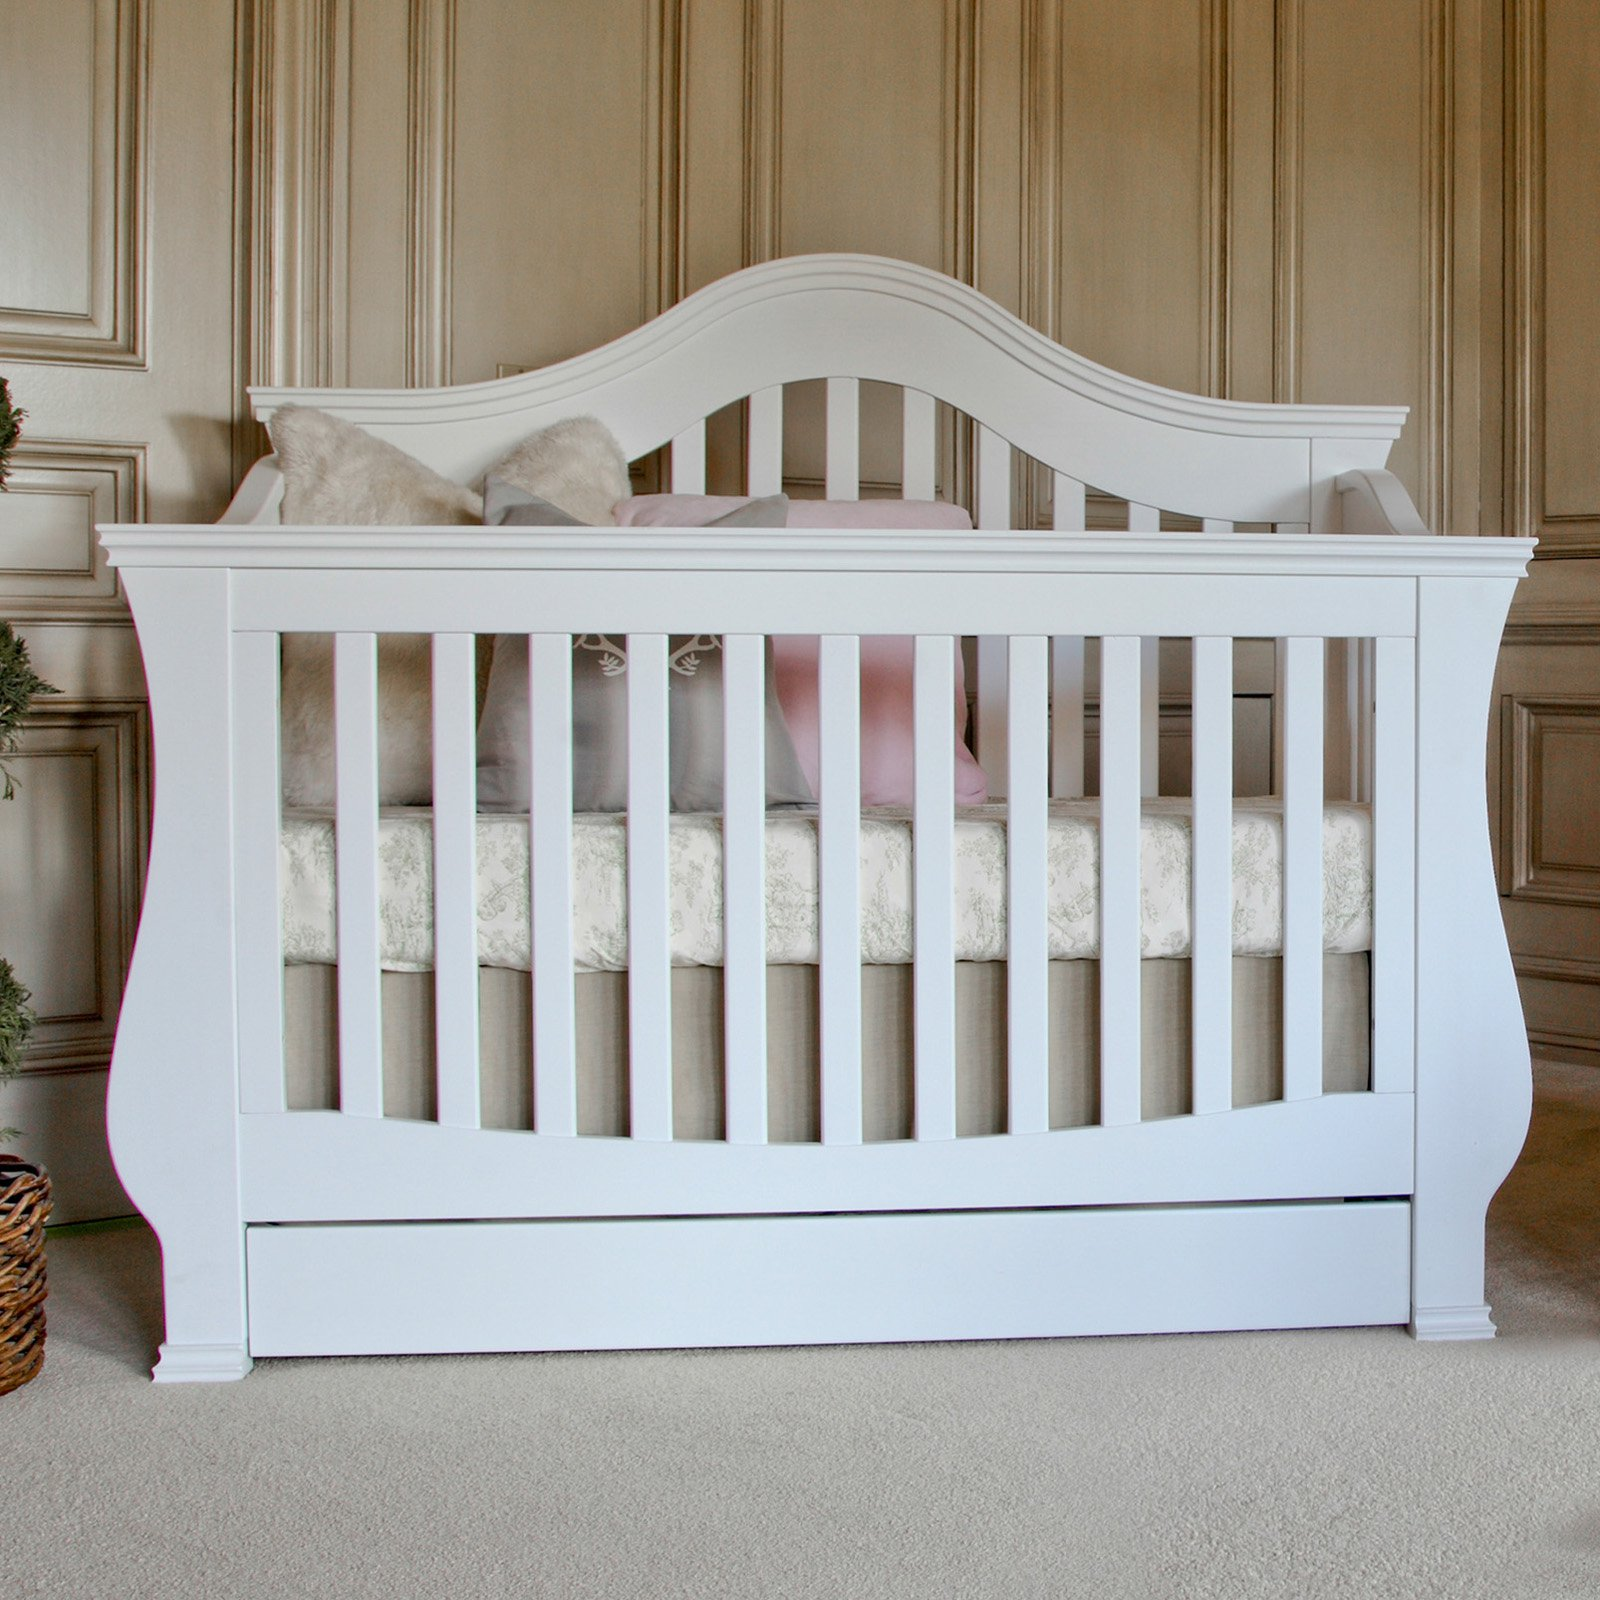 Million Dollar Baby Ashbury 4-in-1 Convertible Crib with Toddler Rail by Million Dollar Baby Classic